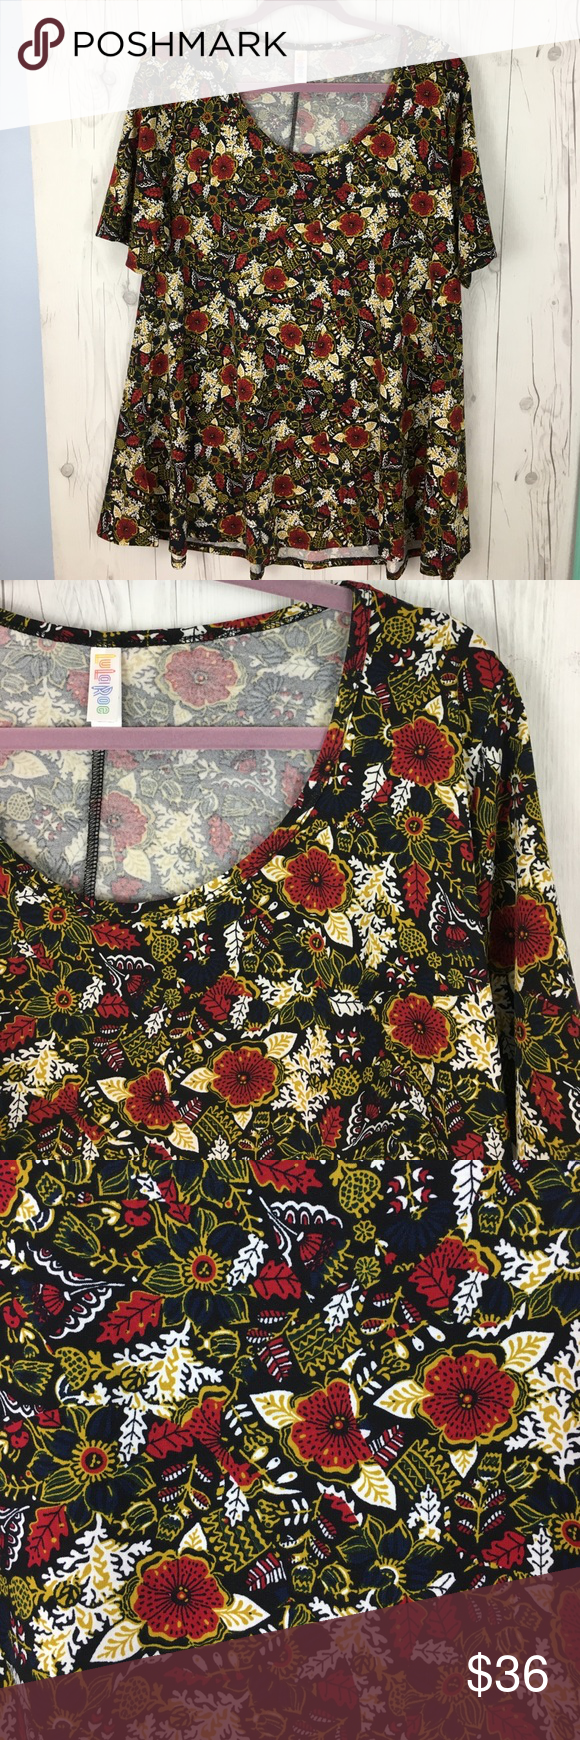 Lularoe Perfect T Lularoe Perfect T, never worn, new with tags. Size L. Background is black! LuLaRoe Tops Tees - Short Sleeve